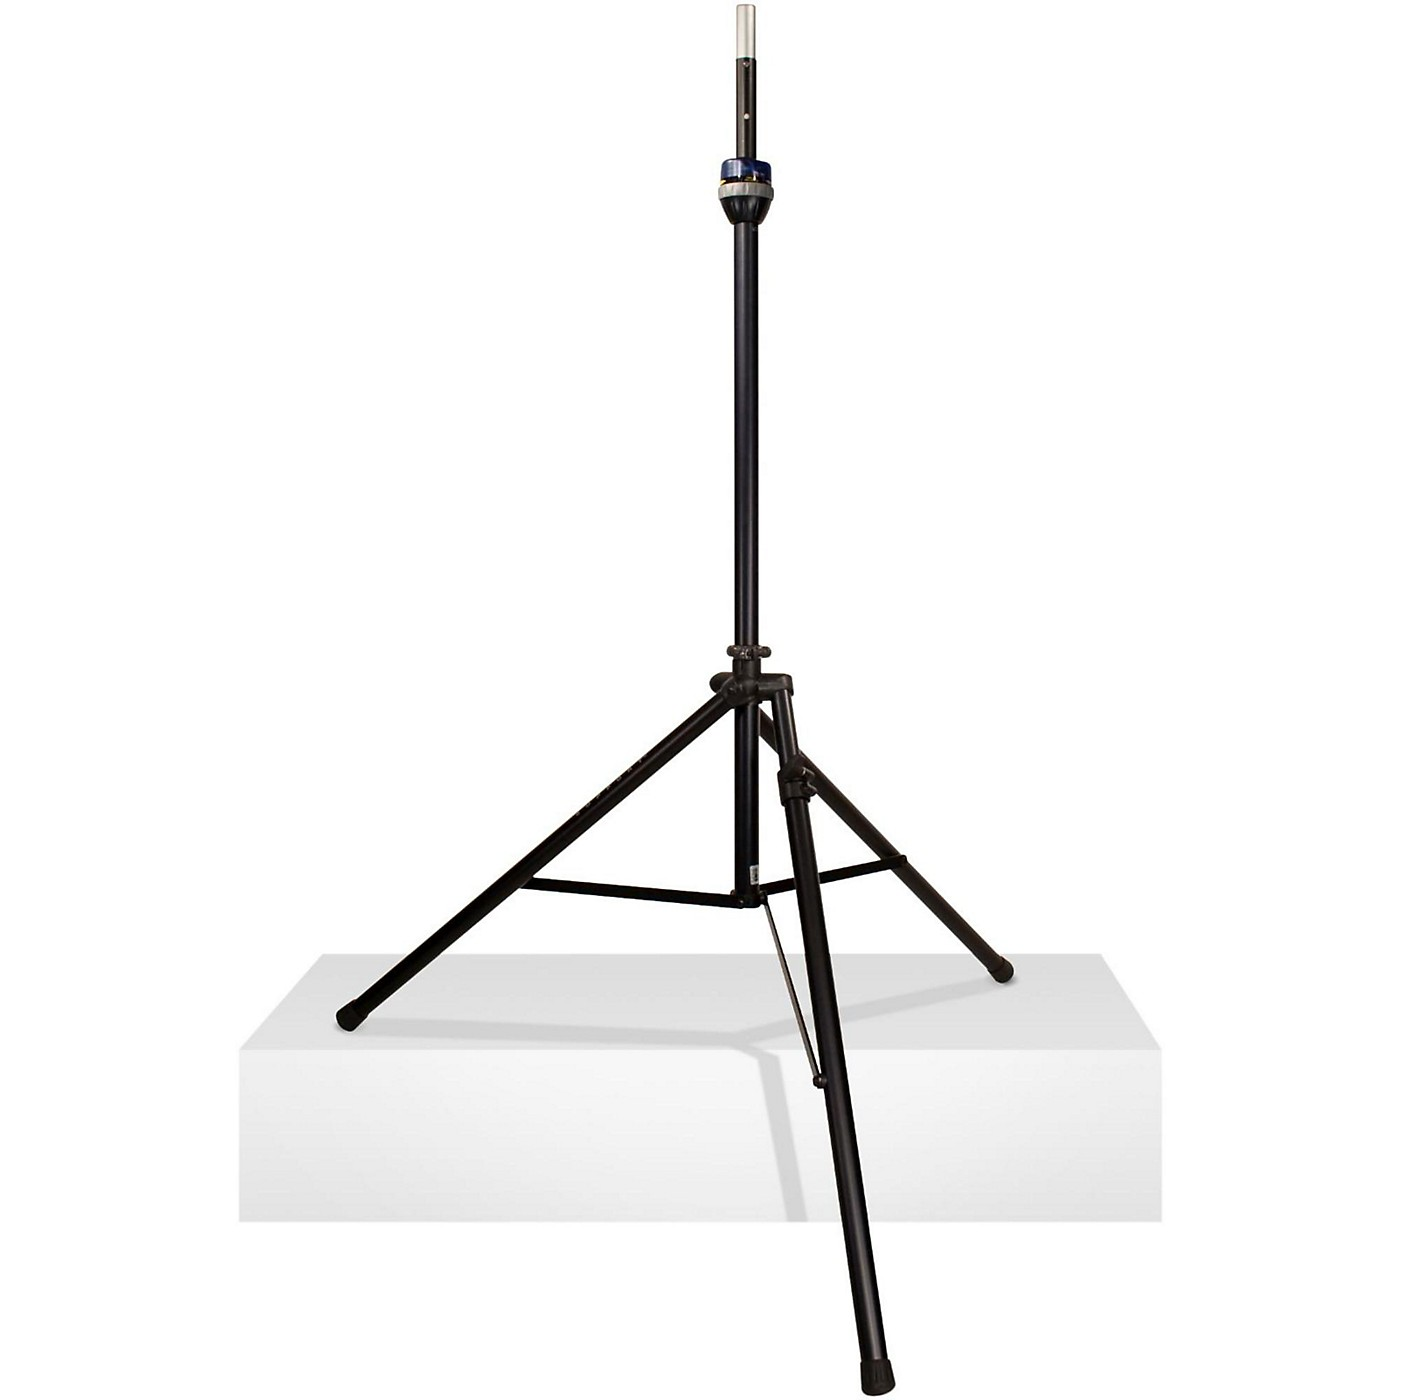 Ultimate Support TS-99BL - Tall, Leveling-Leg Speaker Stand thumbnail